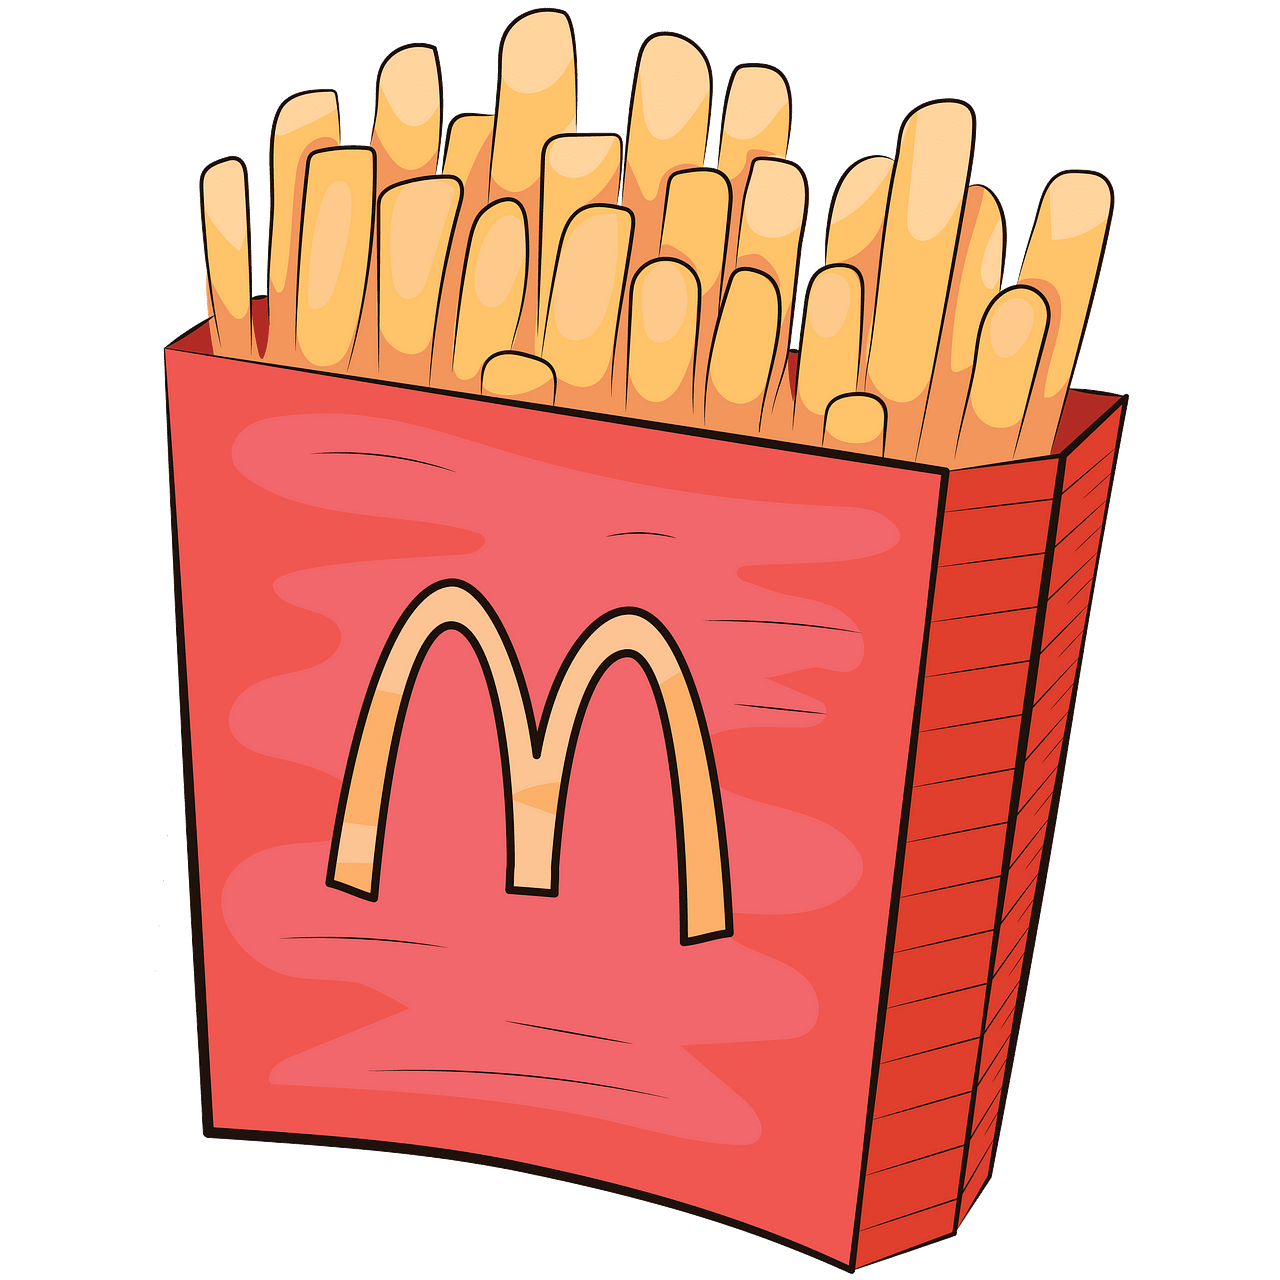 French fries clipart. Free download..